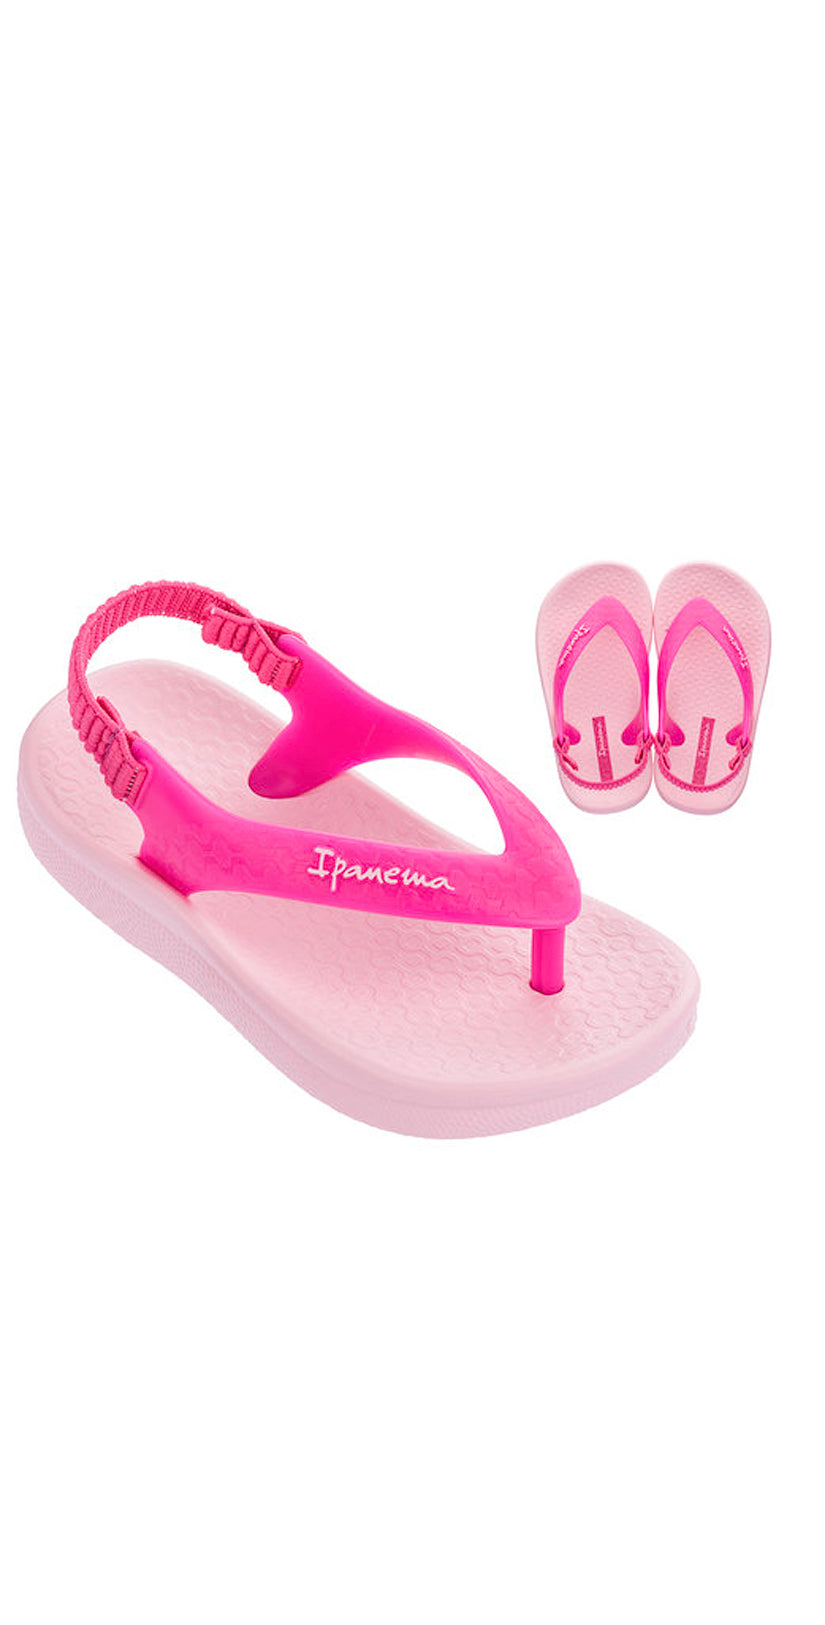 iPanema Ana Tan Baby Sandals Pink